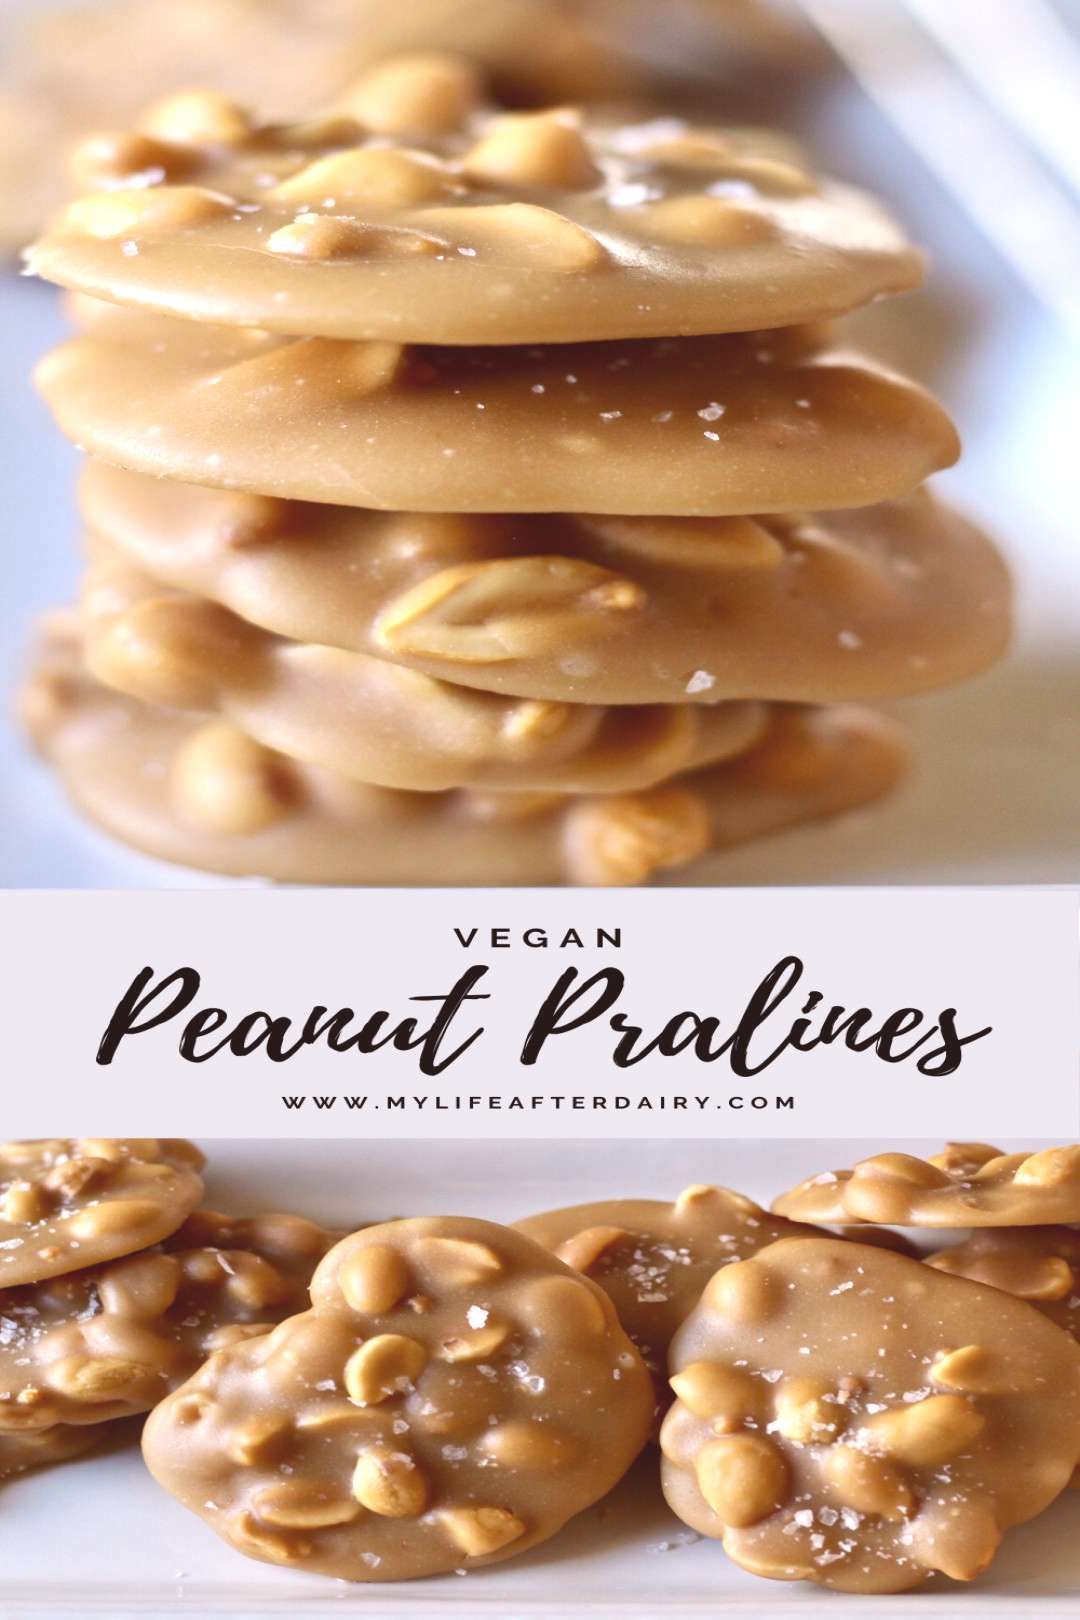 Peanut Pralines Peanut Pralines are a sweet dessert that are lightly topped with flakes of sea salt